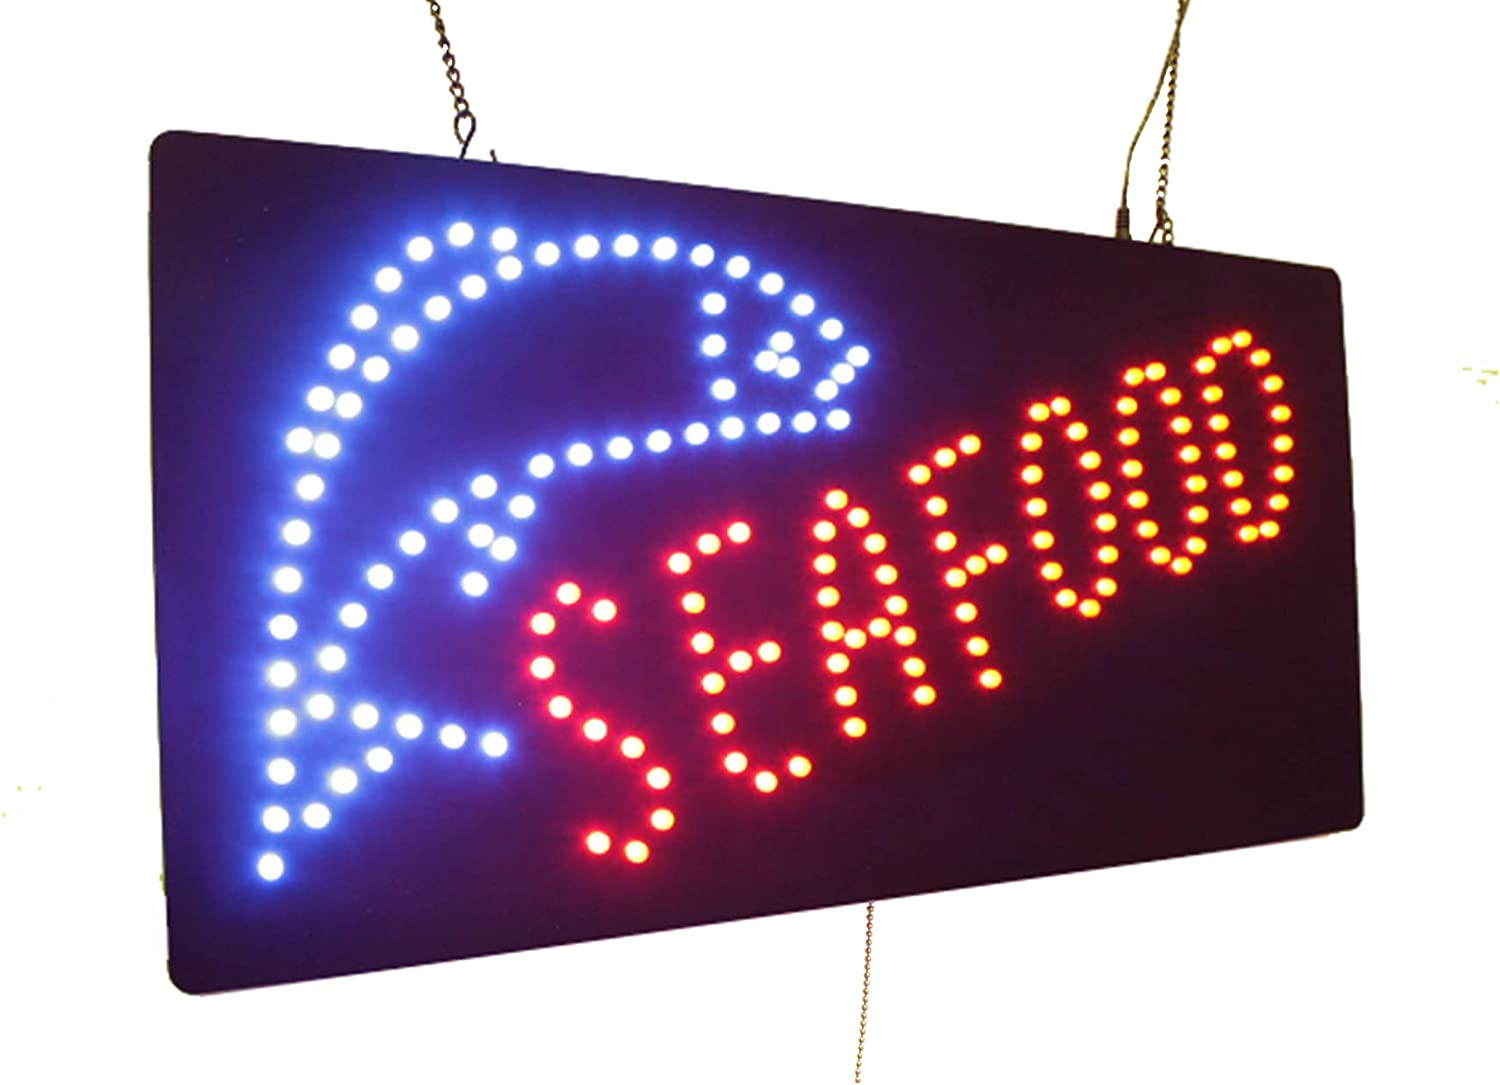 Seafood Sign, TOPKING Signage, LED Neon Open, Store, Window, Shop, Business, Display, Grand Opening Gift